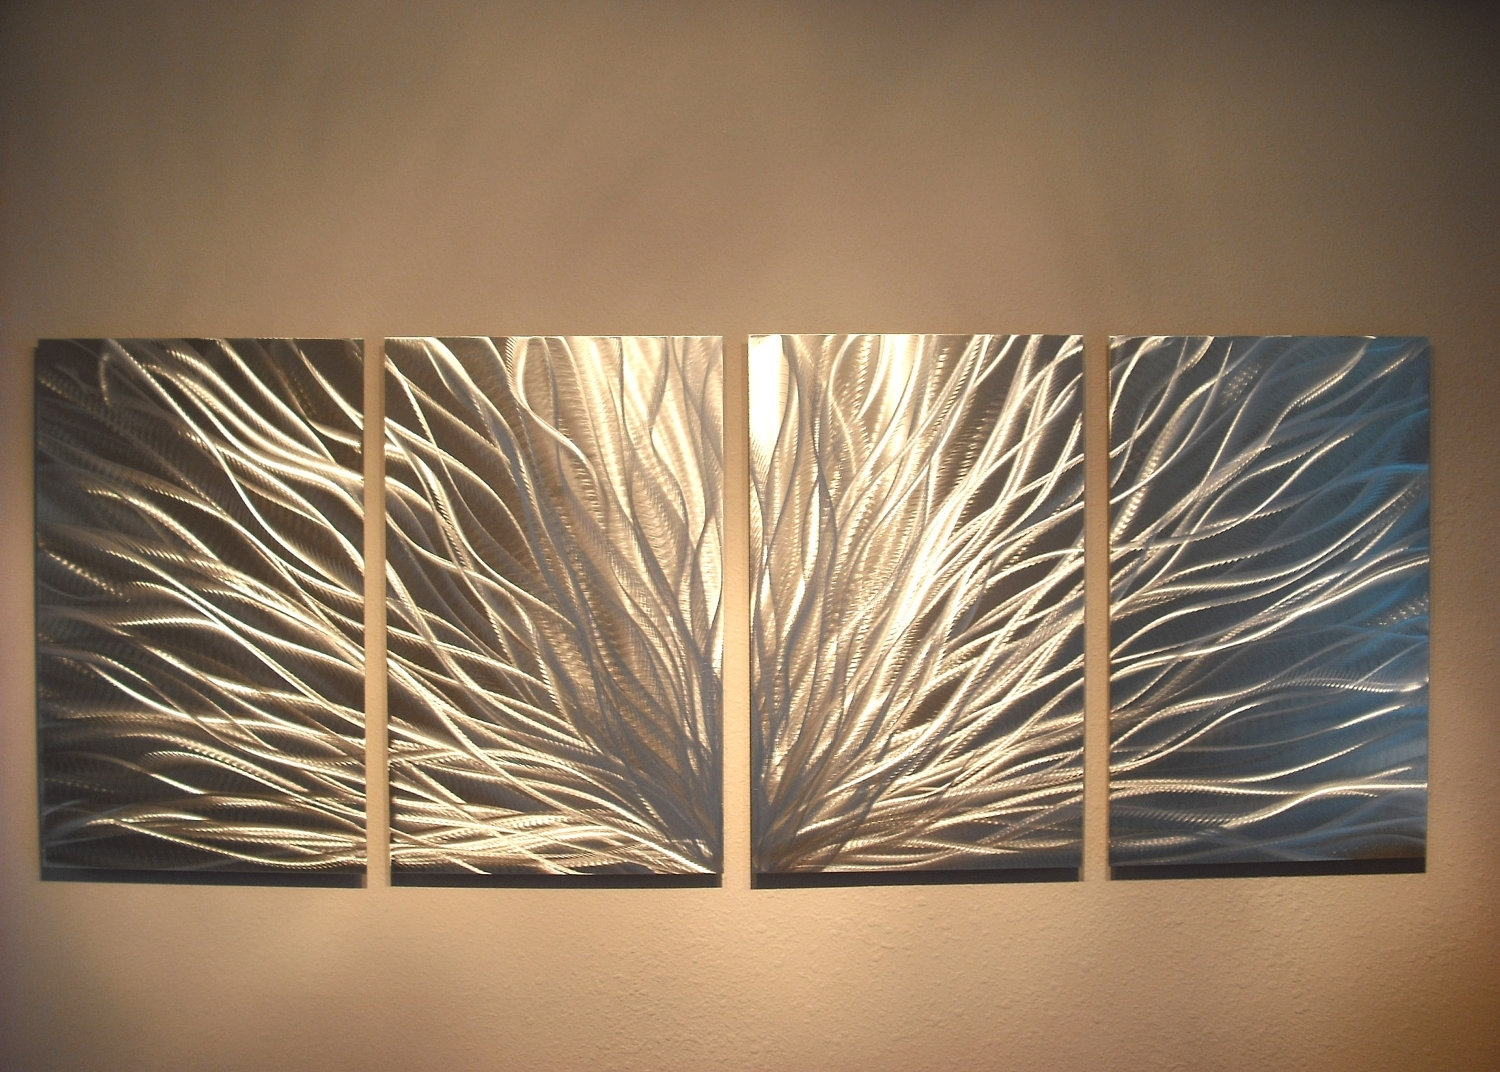 Radiance – Abstract Metal Wall Art Contemporary Modern Decor In Best And Newest Long Abstract Wall Art (View 4 of 20)